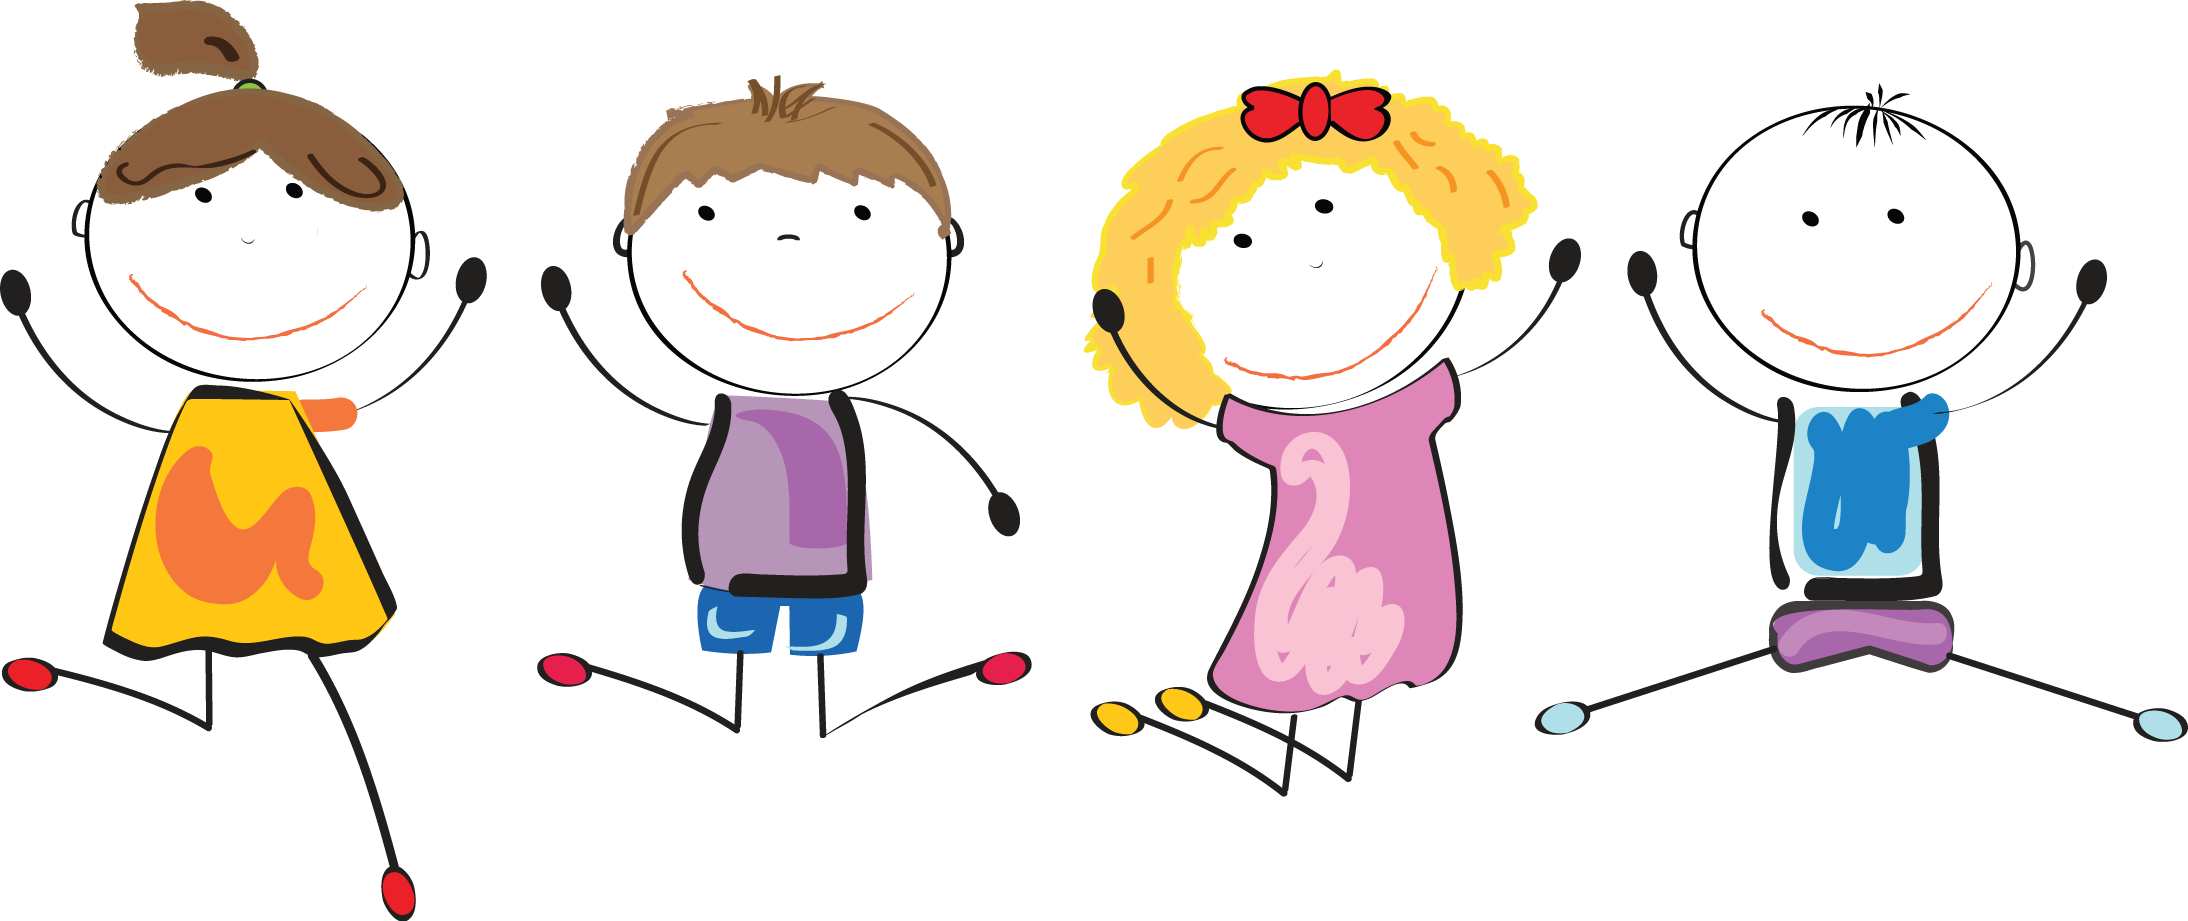 One dance clipart banner transparent download Kids Dance Clipart | Free download best Kids Dance Clipart ... banner transparent download